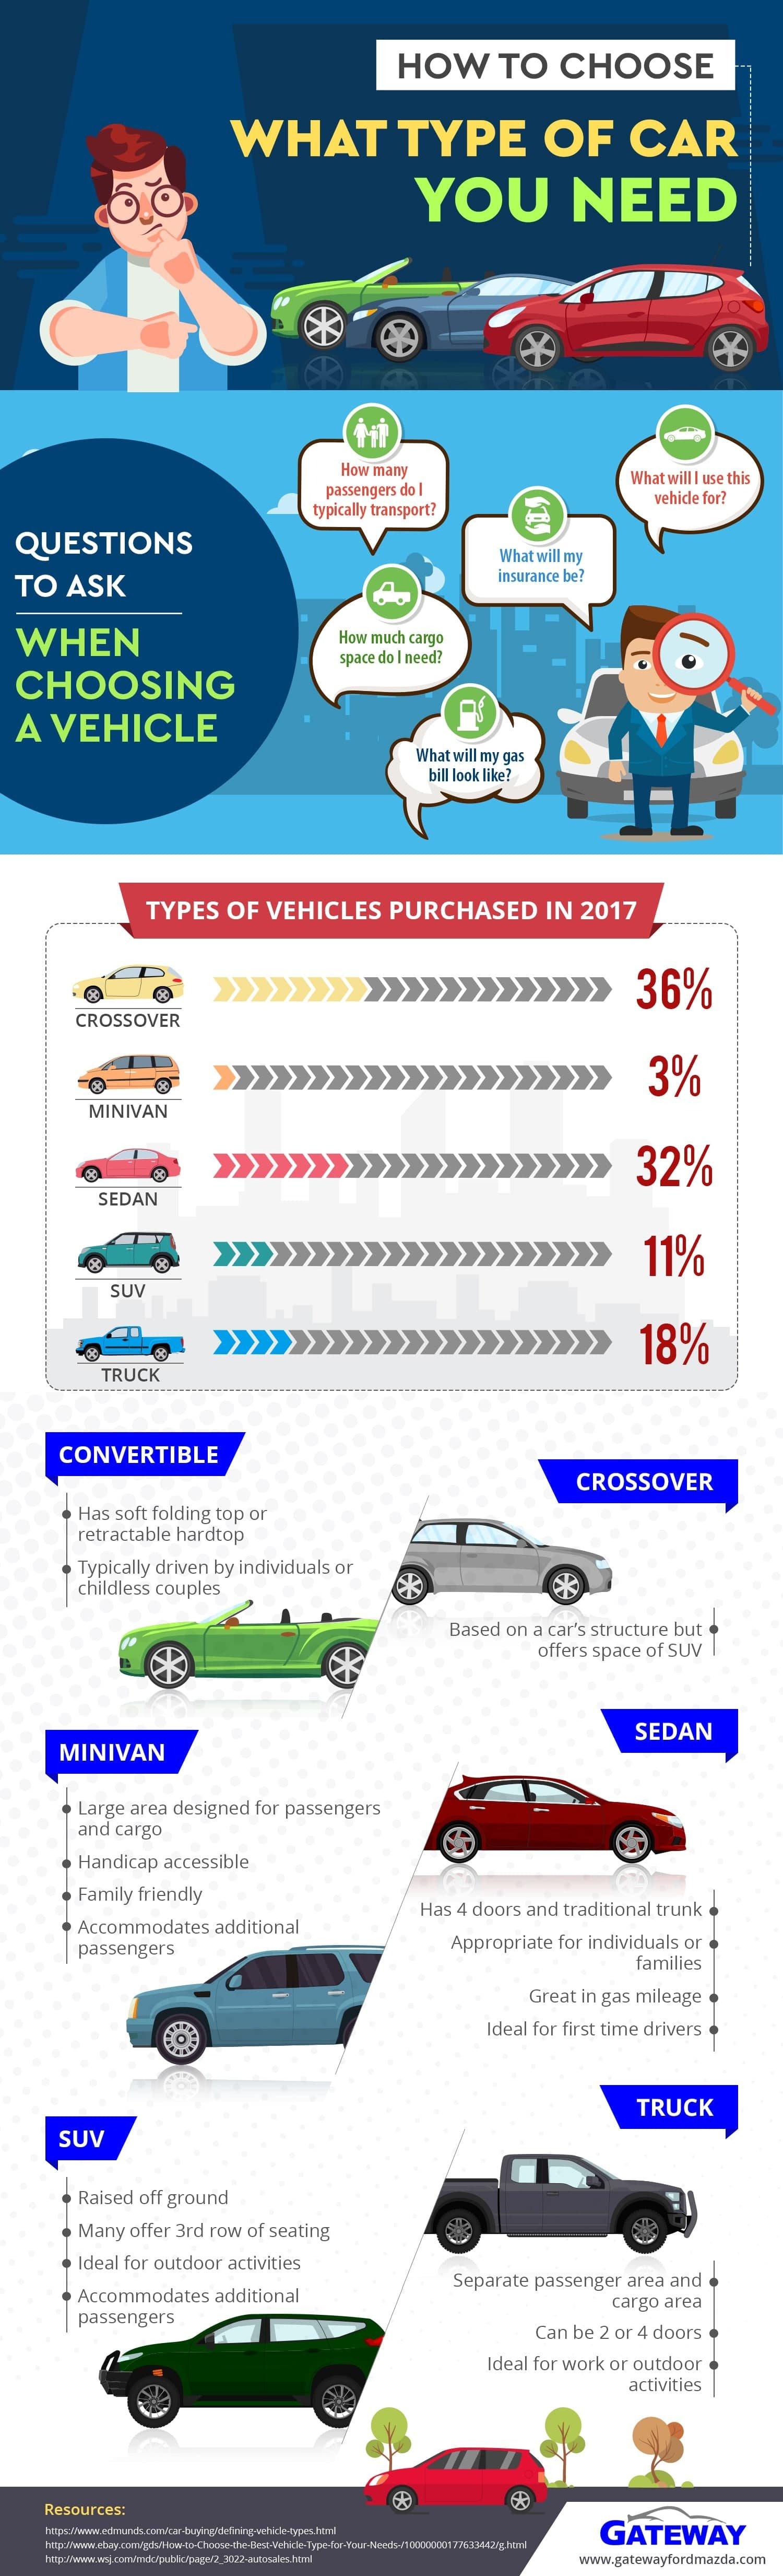 How to Choose What Type of Car You Need Infographic